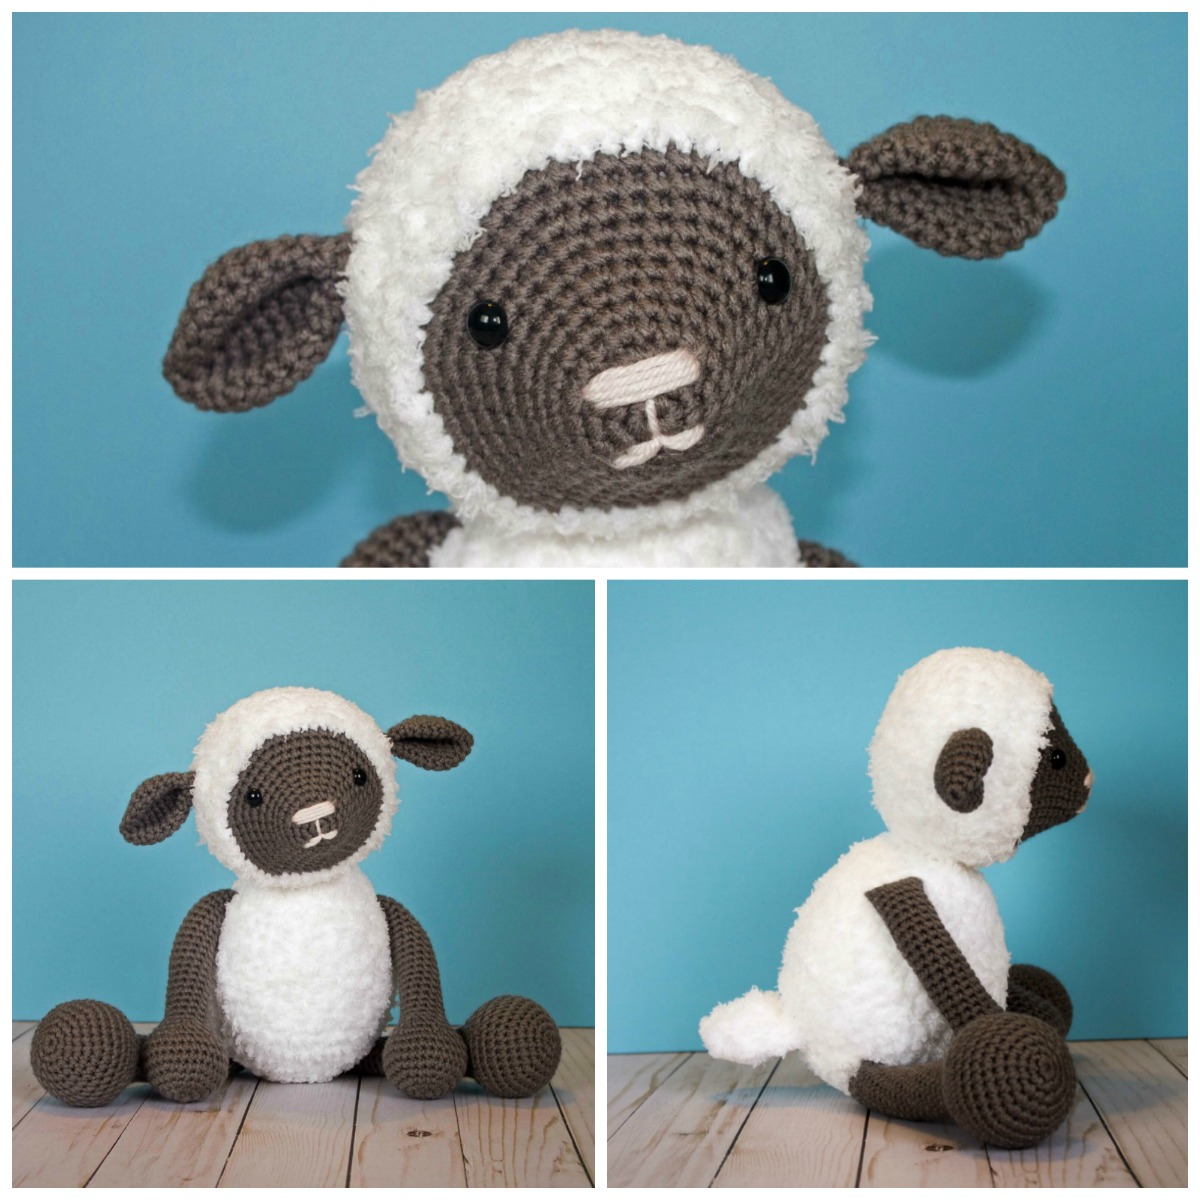 Free Crochet Pattern For Crochet Lamb 2 Thefriendlyredfoxcom